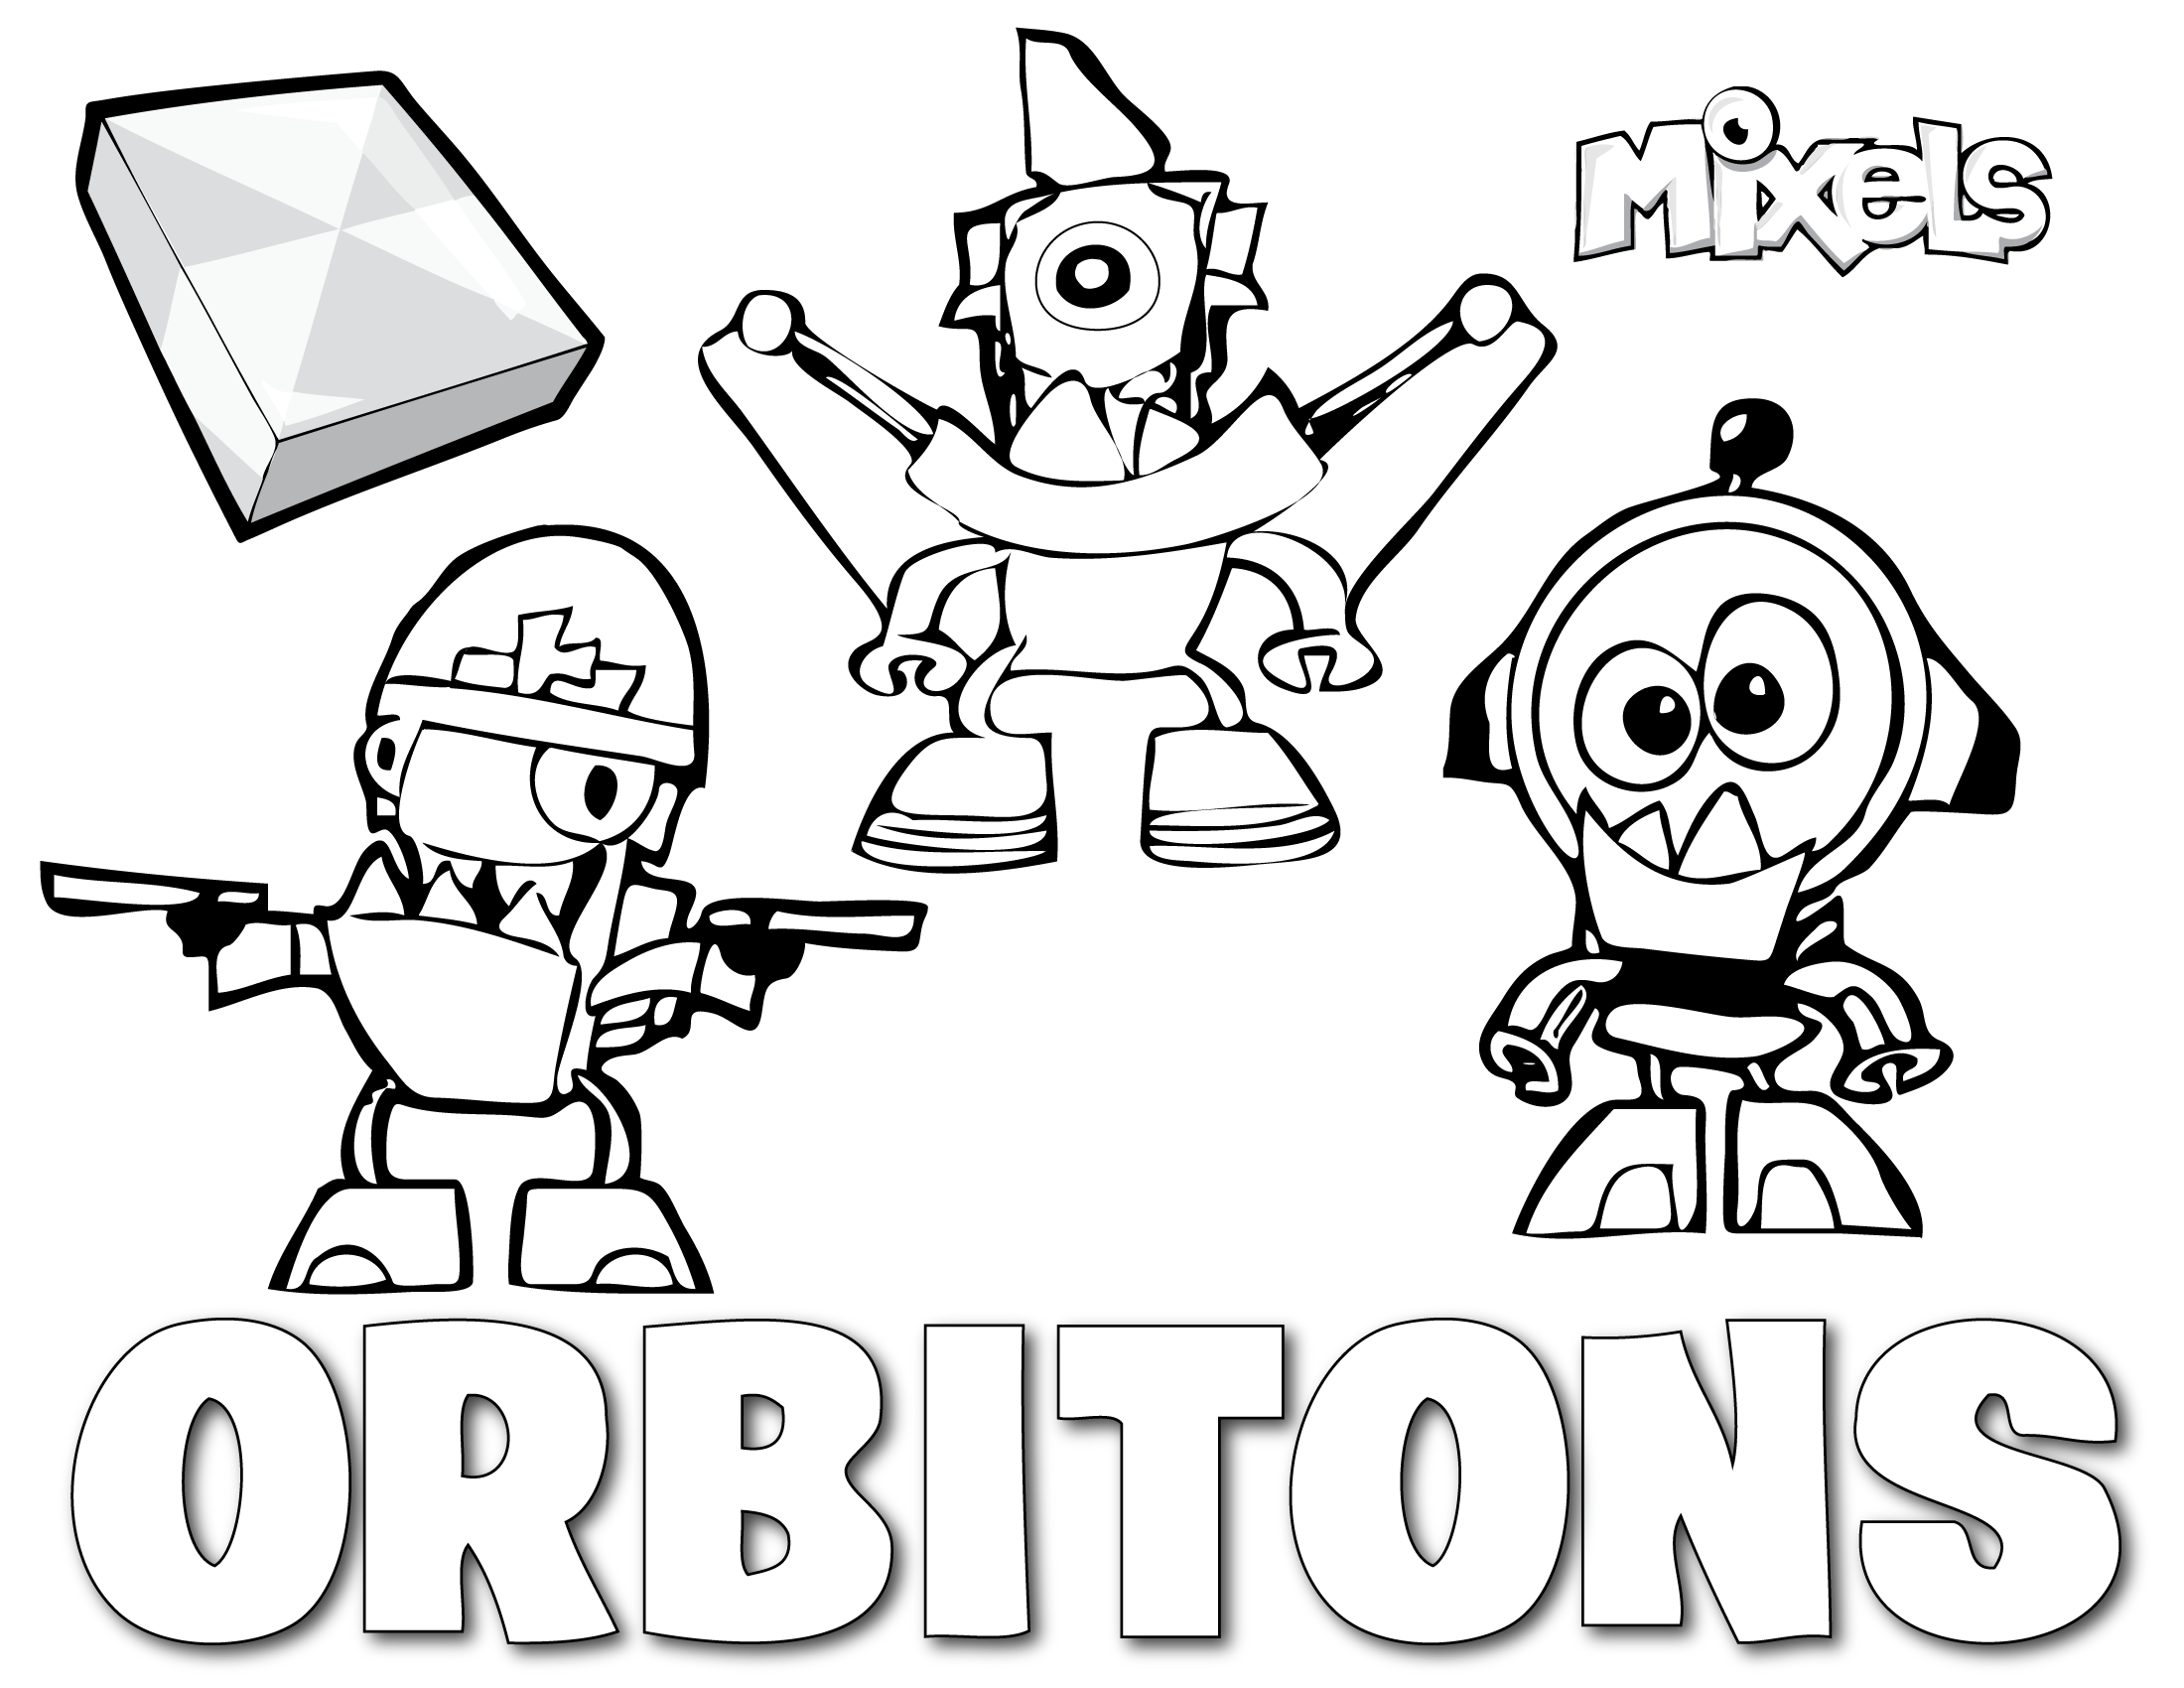 mixels coloring pages to print - photo#5